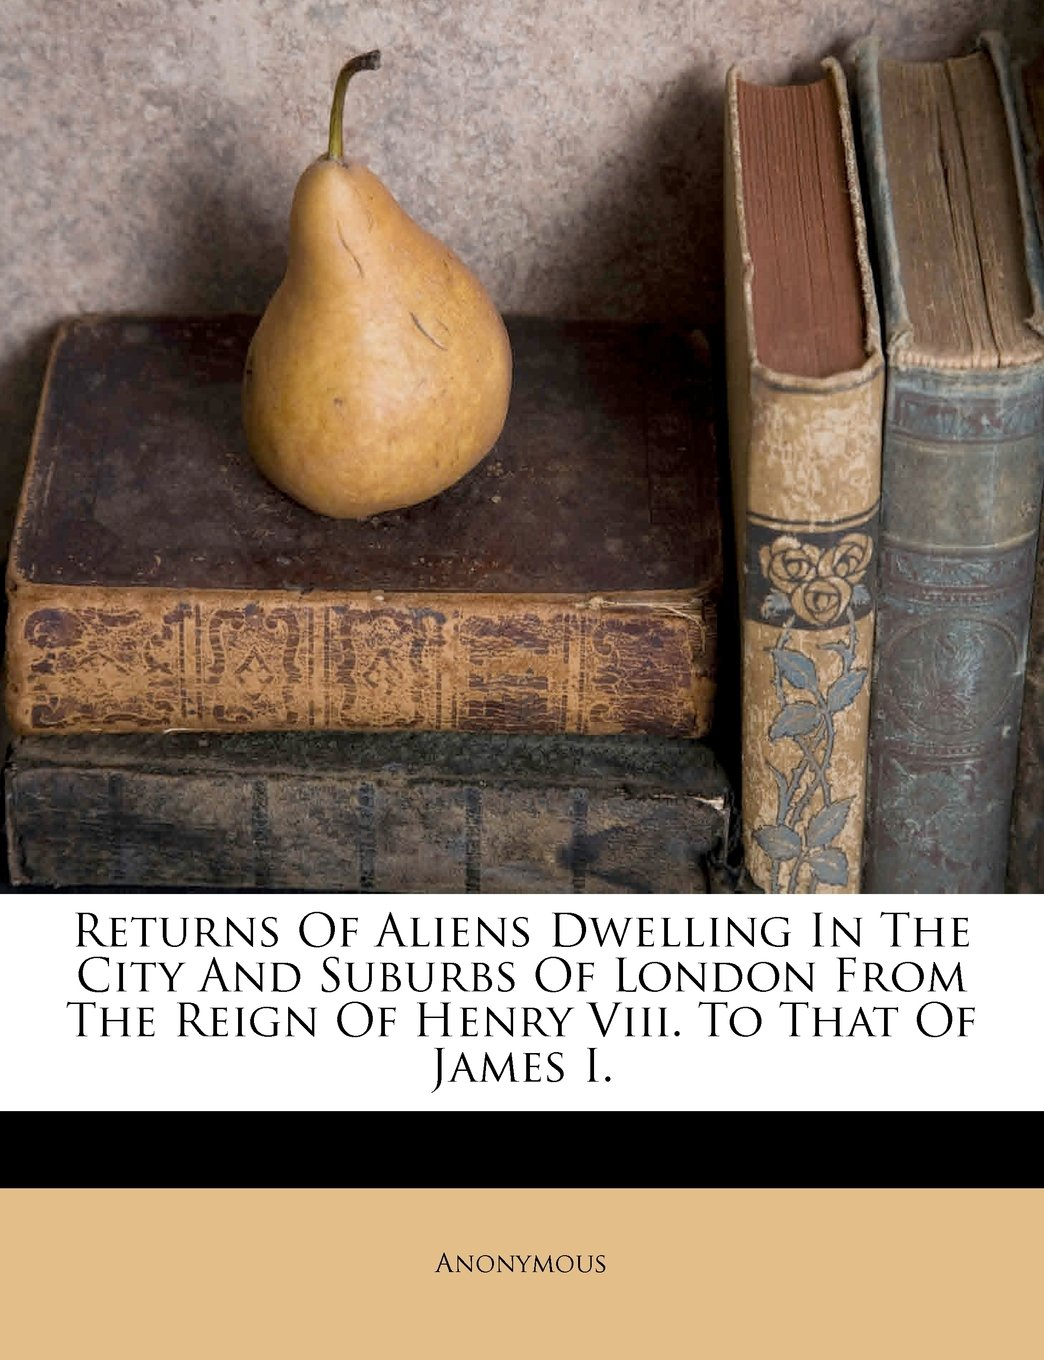 Download Returns Of Aliens Dwelling In The City And Suburbs Of London From The Reign Of Henry Viii. To That Of James I. PDF